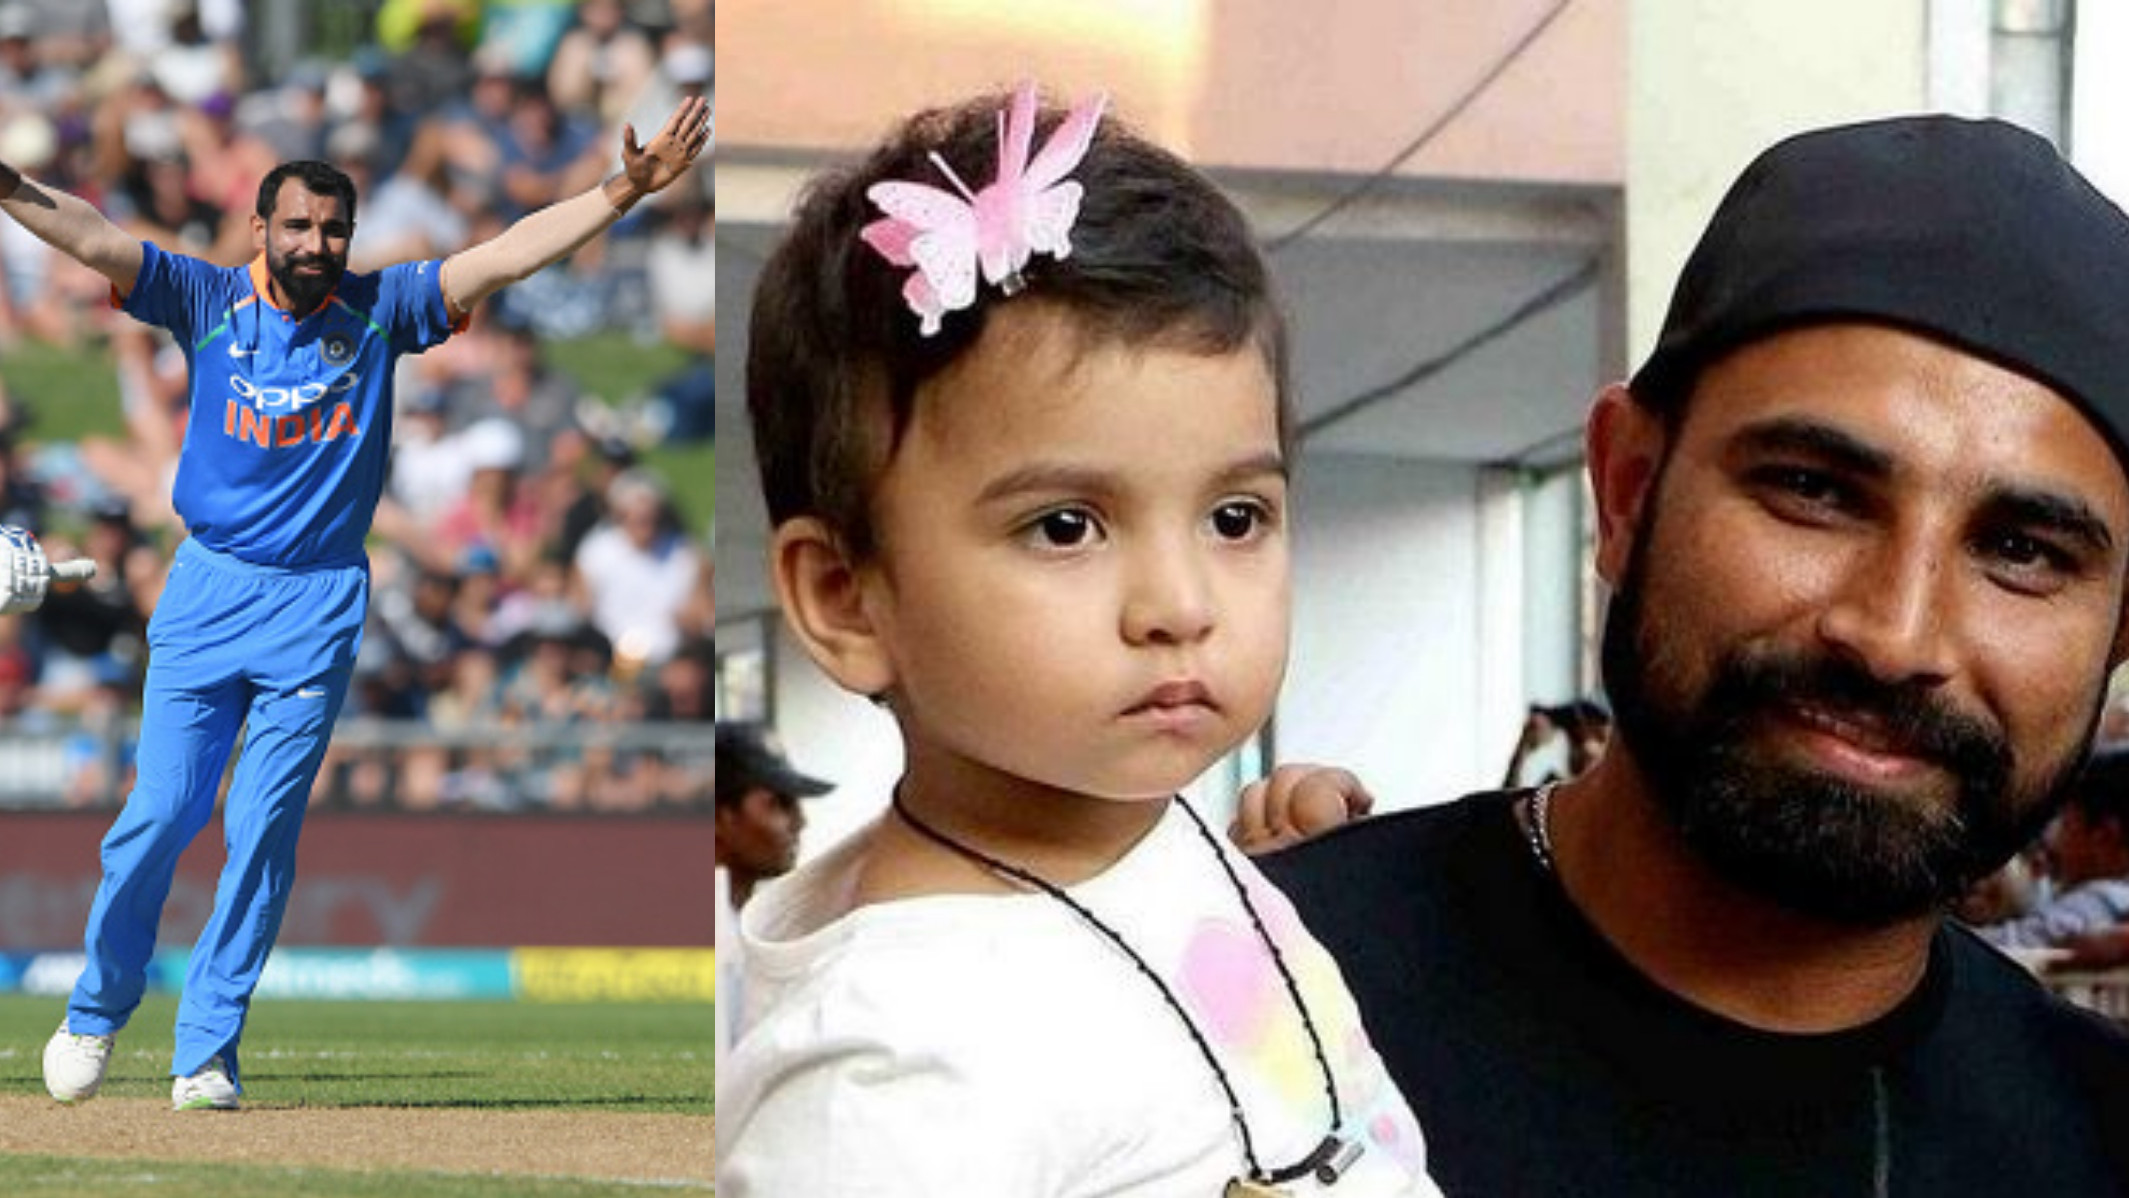 NZ v IND 2019: Mohammad Shami dedicates his ODI record to his daughter